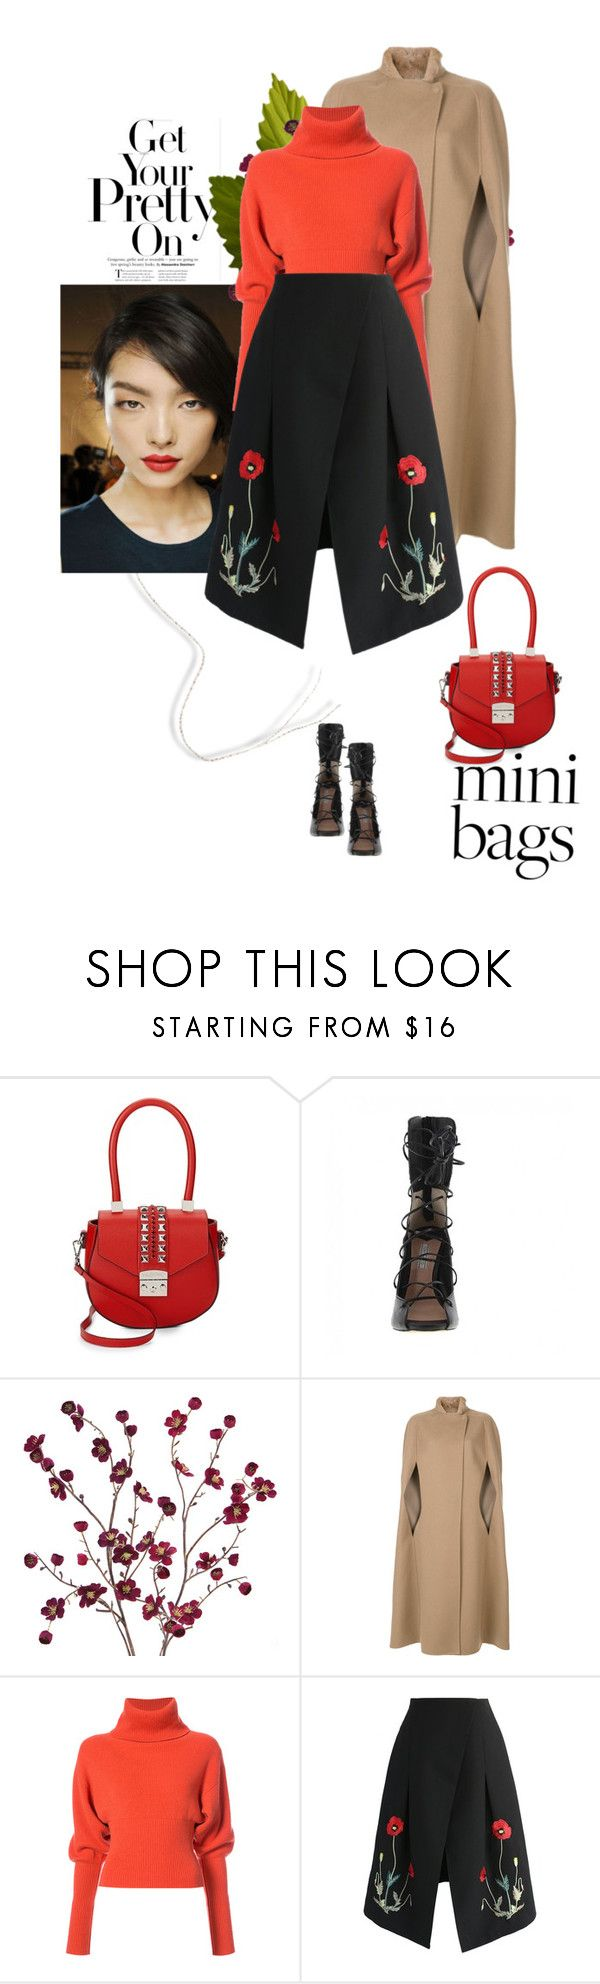 """""""Get your pretty on!"""" by laonela ❤ liked on Polyvore featuring Mario Valentino, Cost Plus World Market, Agnona, Creatures of the Wind and Chicwish"""